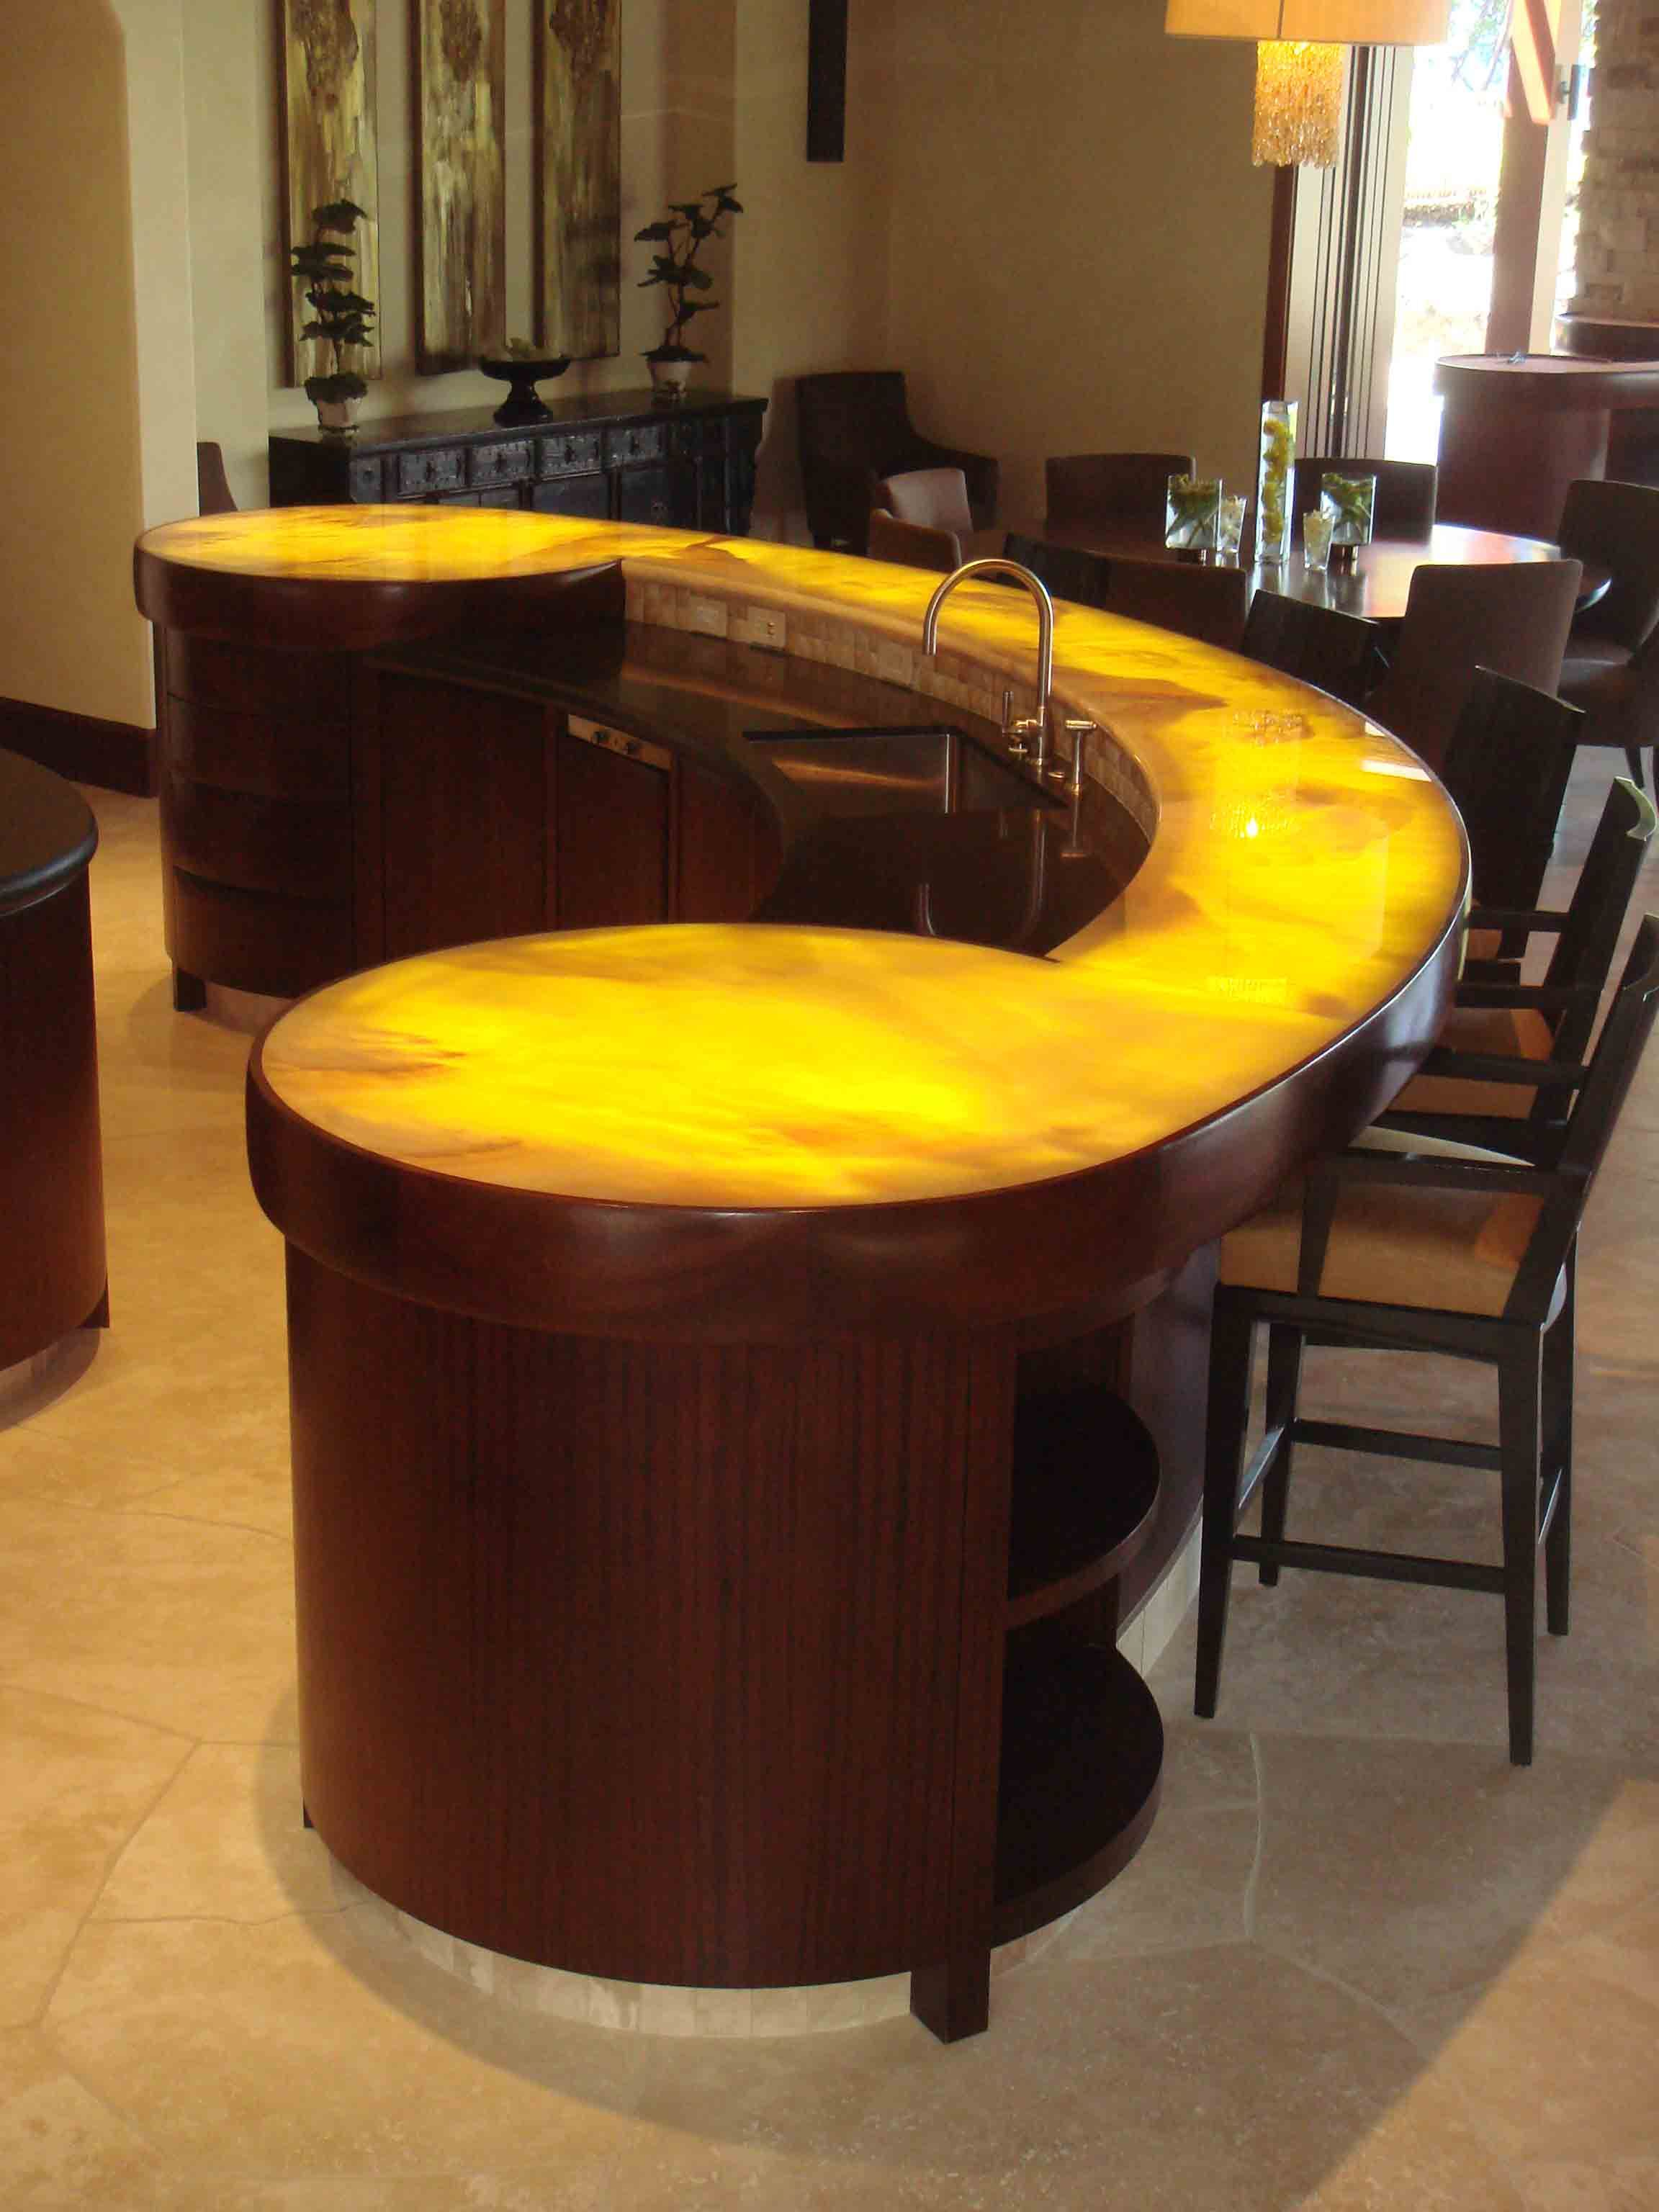 Fetching modern bar counter designs for home design with dark brown wood small bar table also - Bar counter designs for home ...